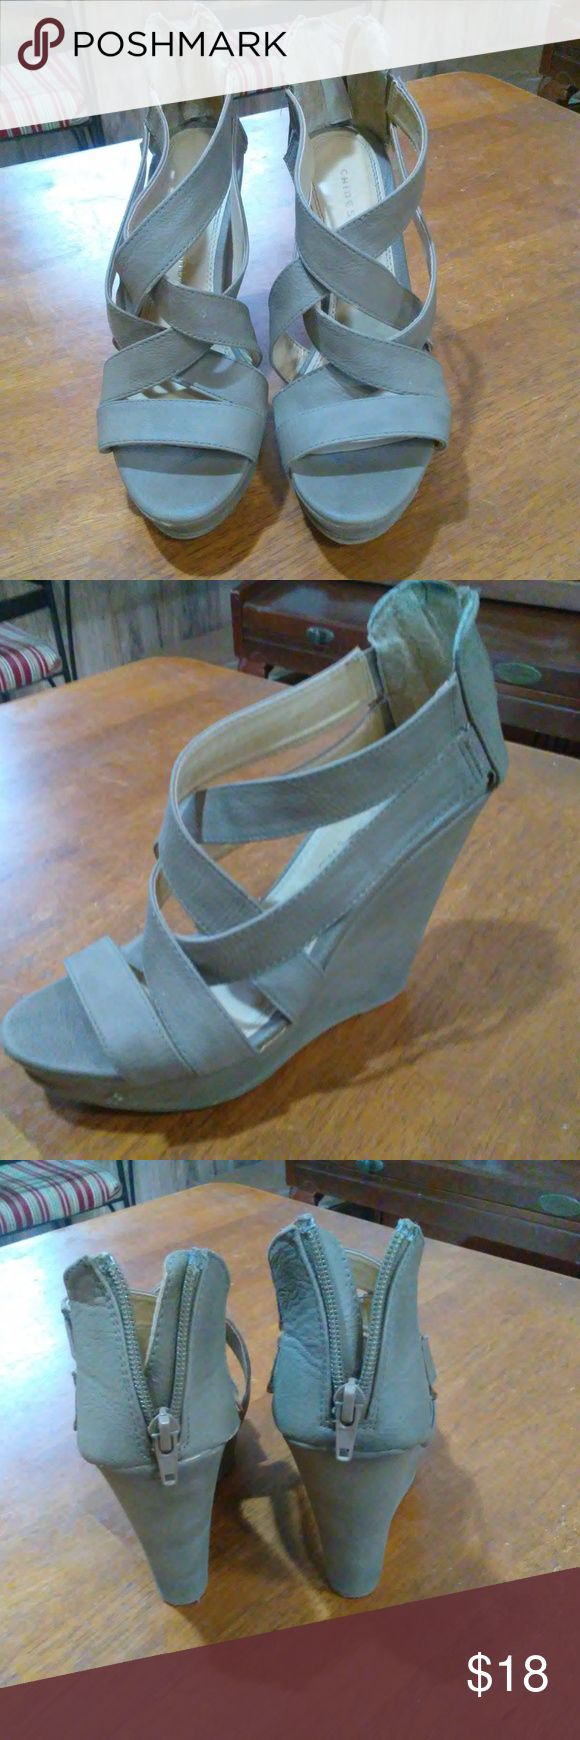 tan color Heels, Chinese Laundry Size 7 Beige color Heels, Chinese Laundry Size 7 Chinese Laundry Shoes Heels